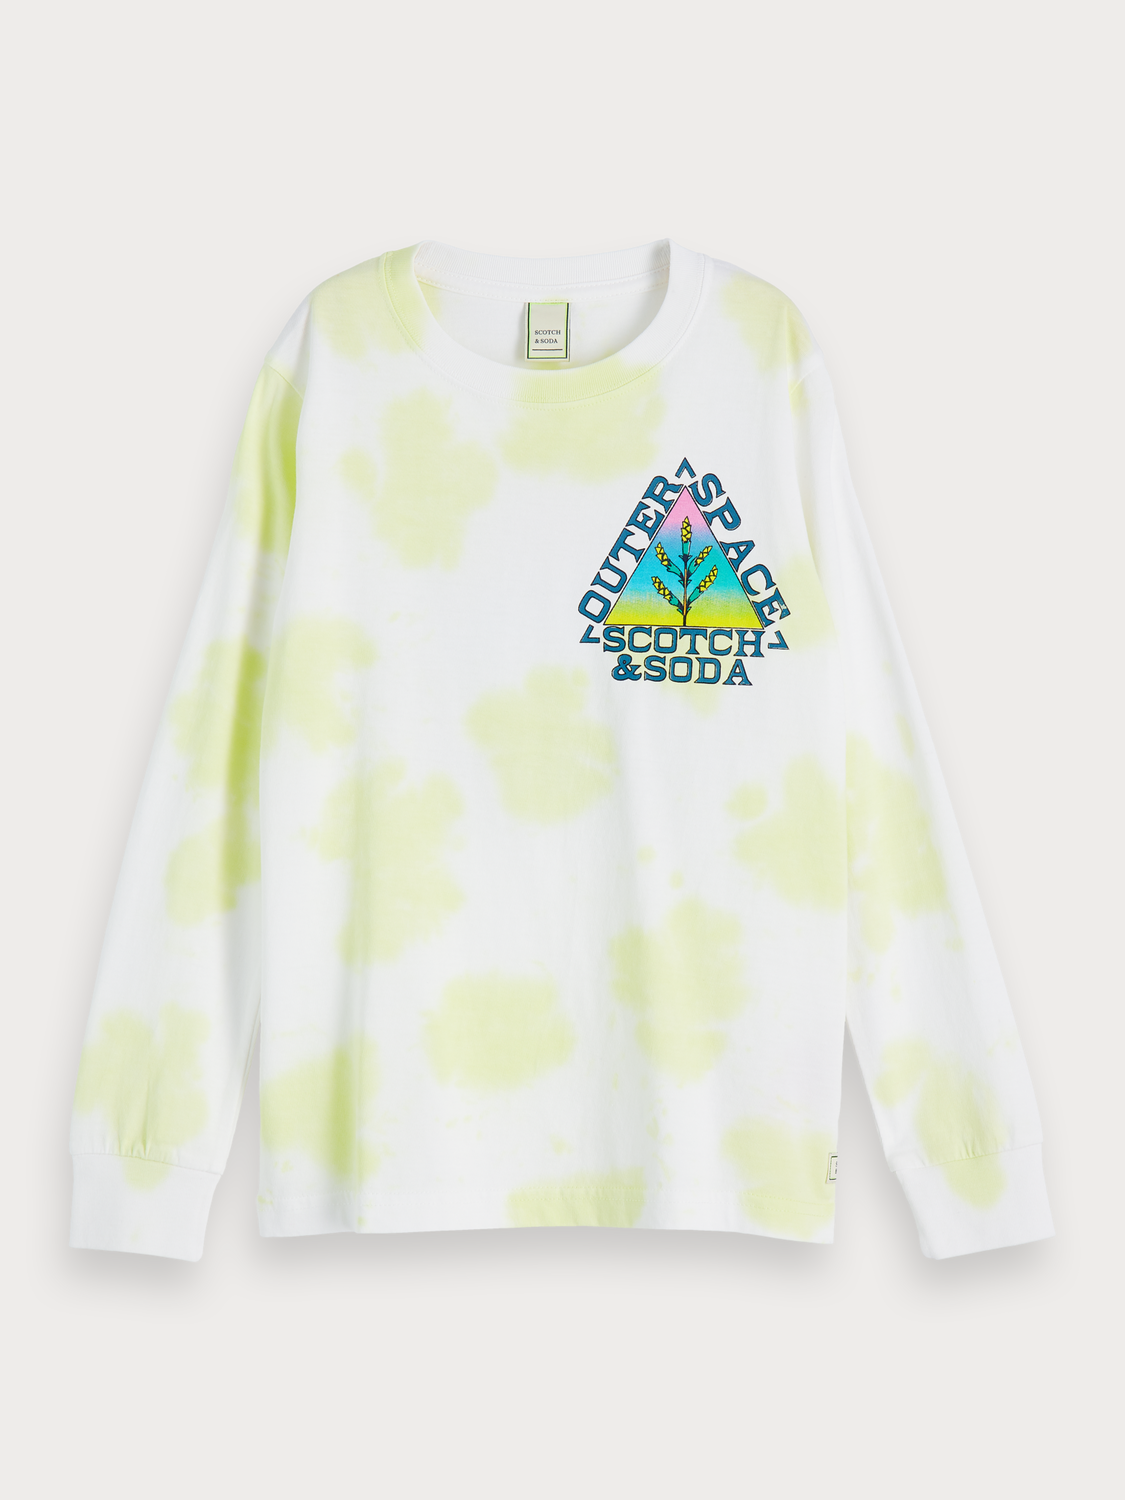 Boys Tie dye artwork t-shirt